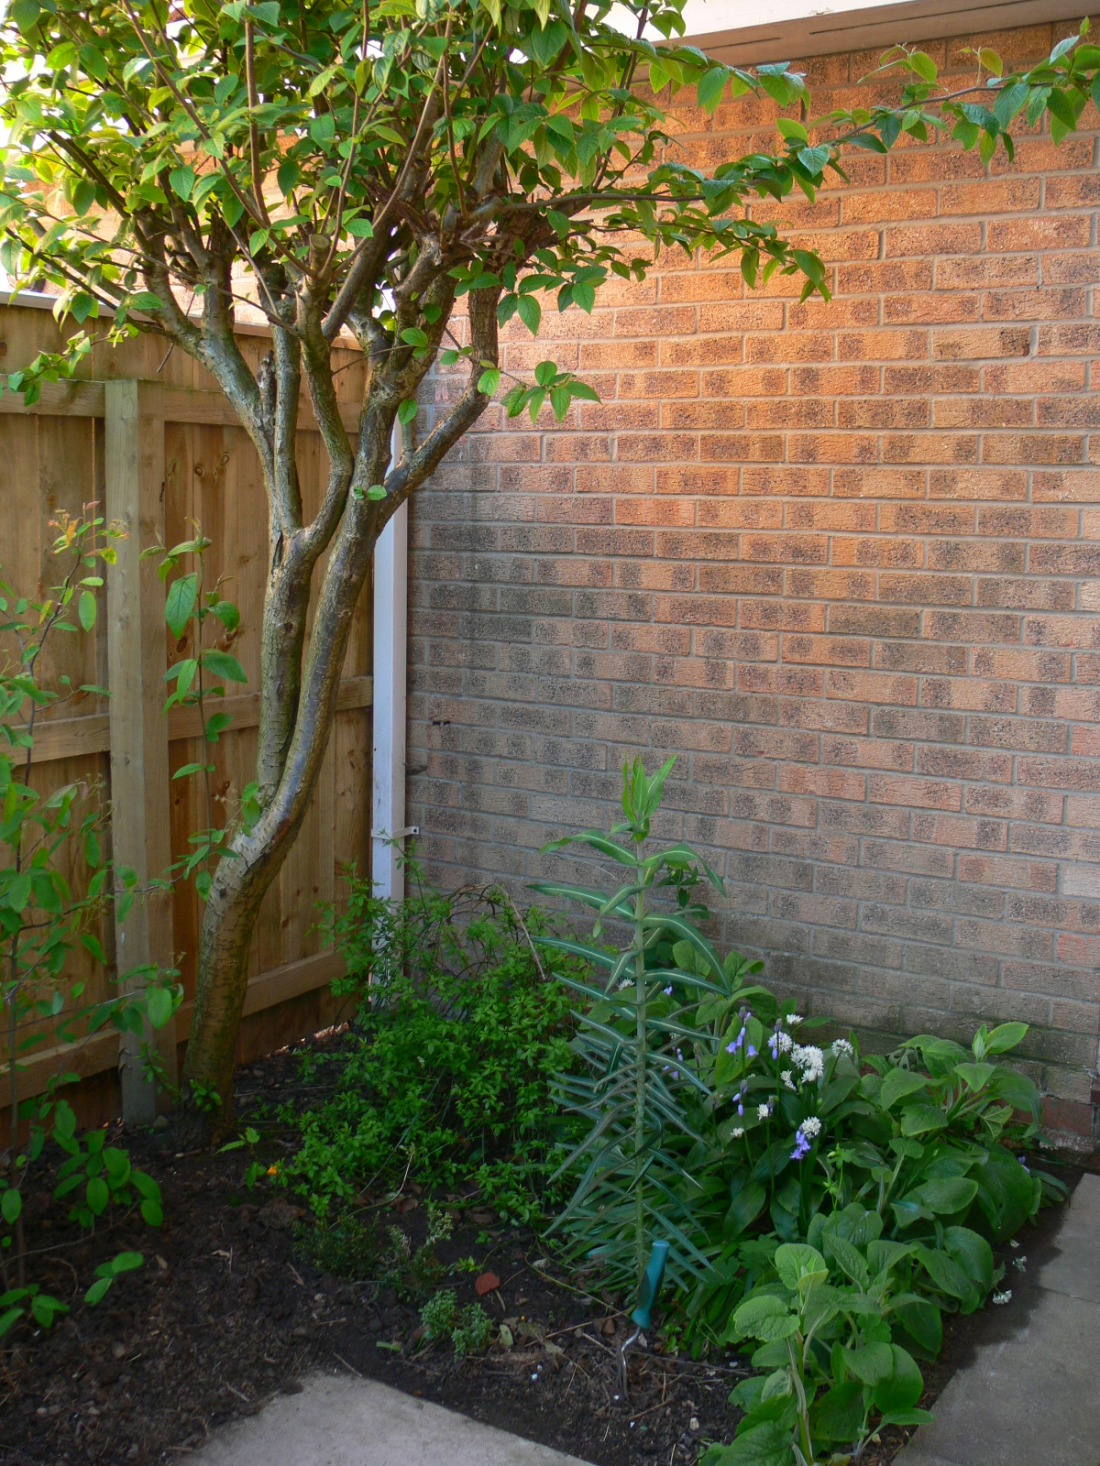 Heres a tricky area, lots of shade, probably its best year yet, a patch three decades old. I've also planted Amelanchier to the left and a few weeks ago the small white flowers were a delight in the semi-shade.